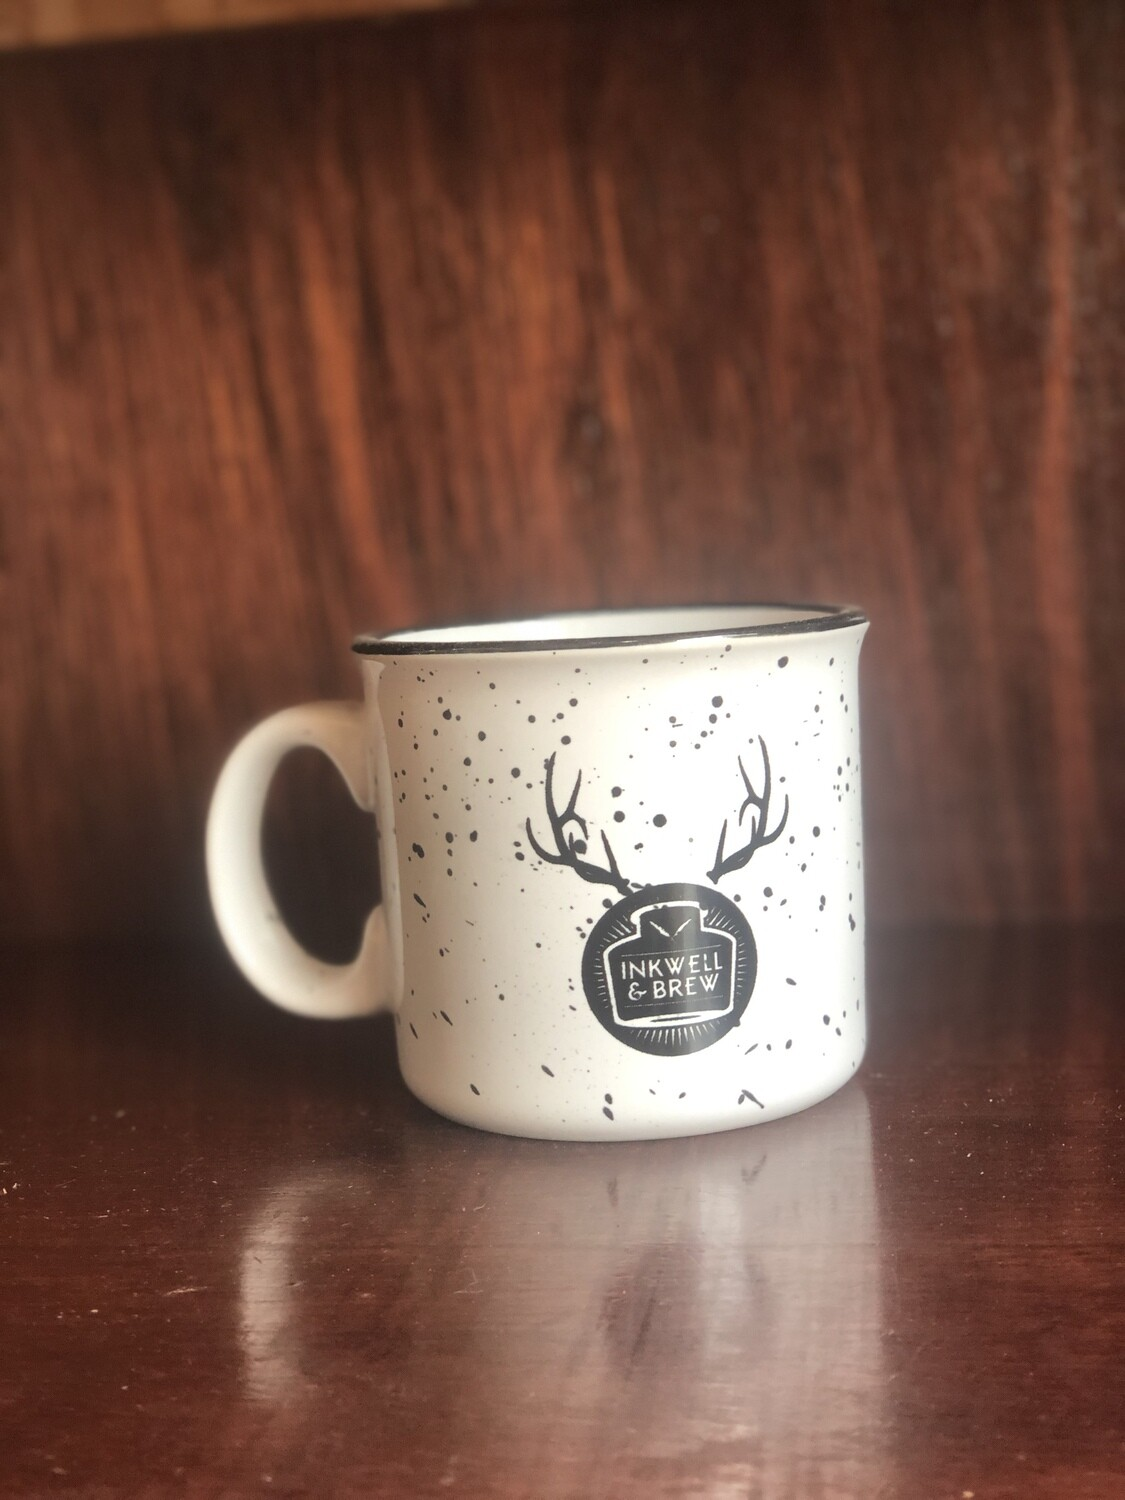 Speckled Inkwell Mugs